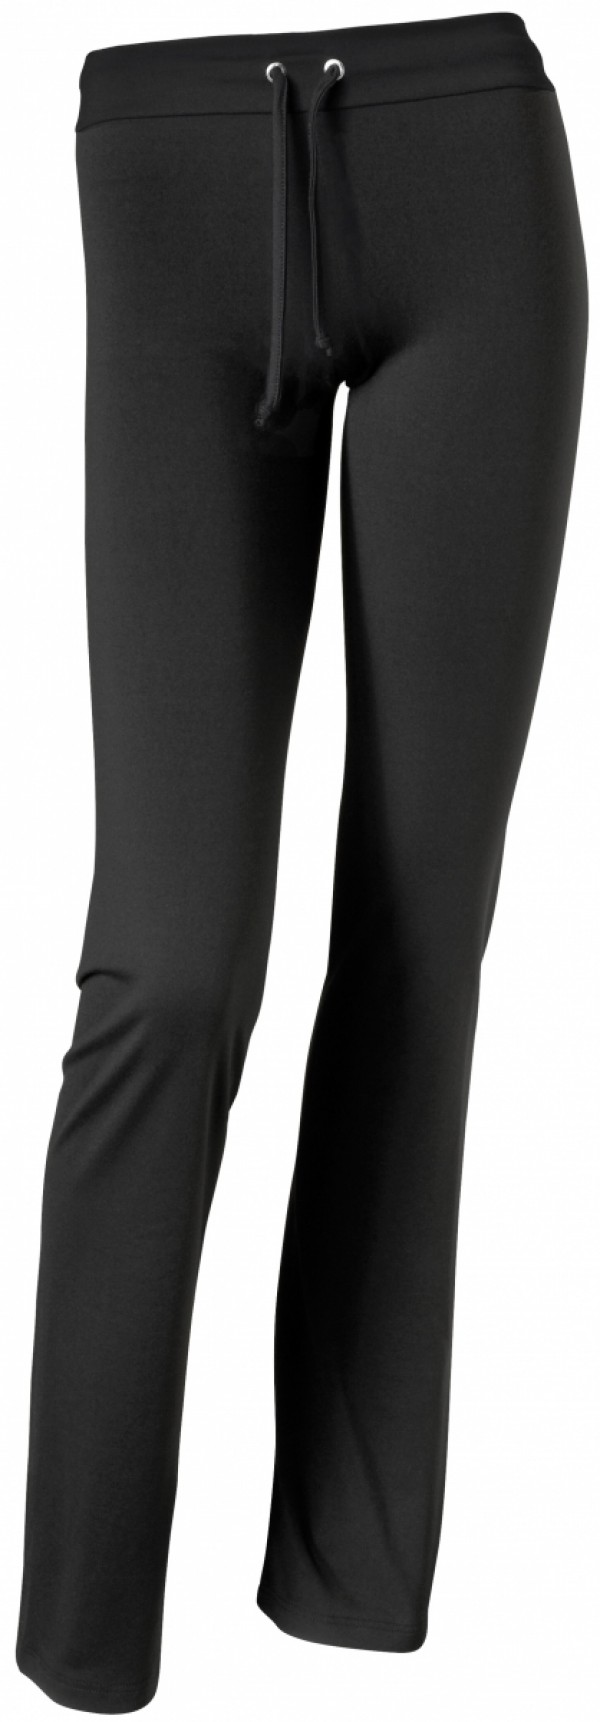 Papillon supplex straight pant